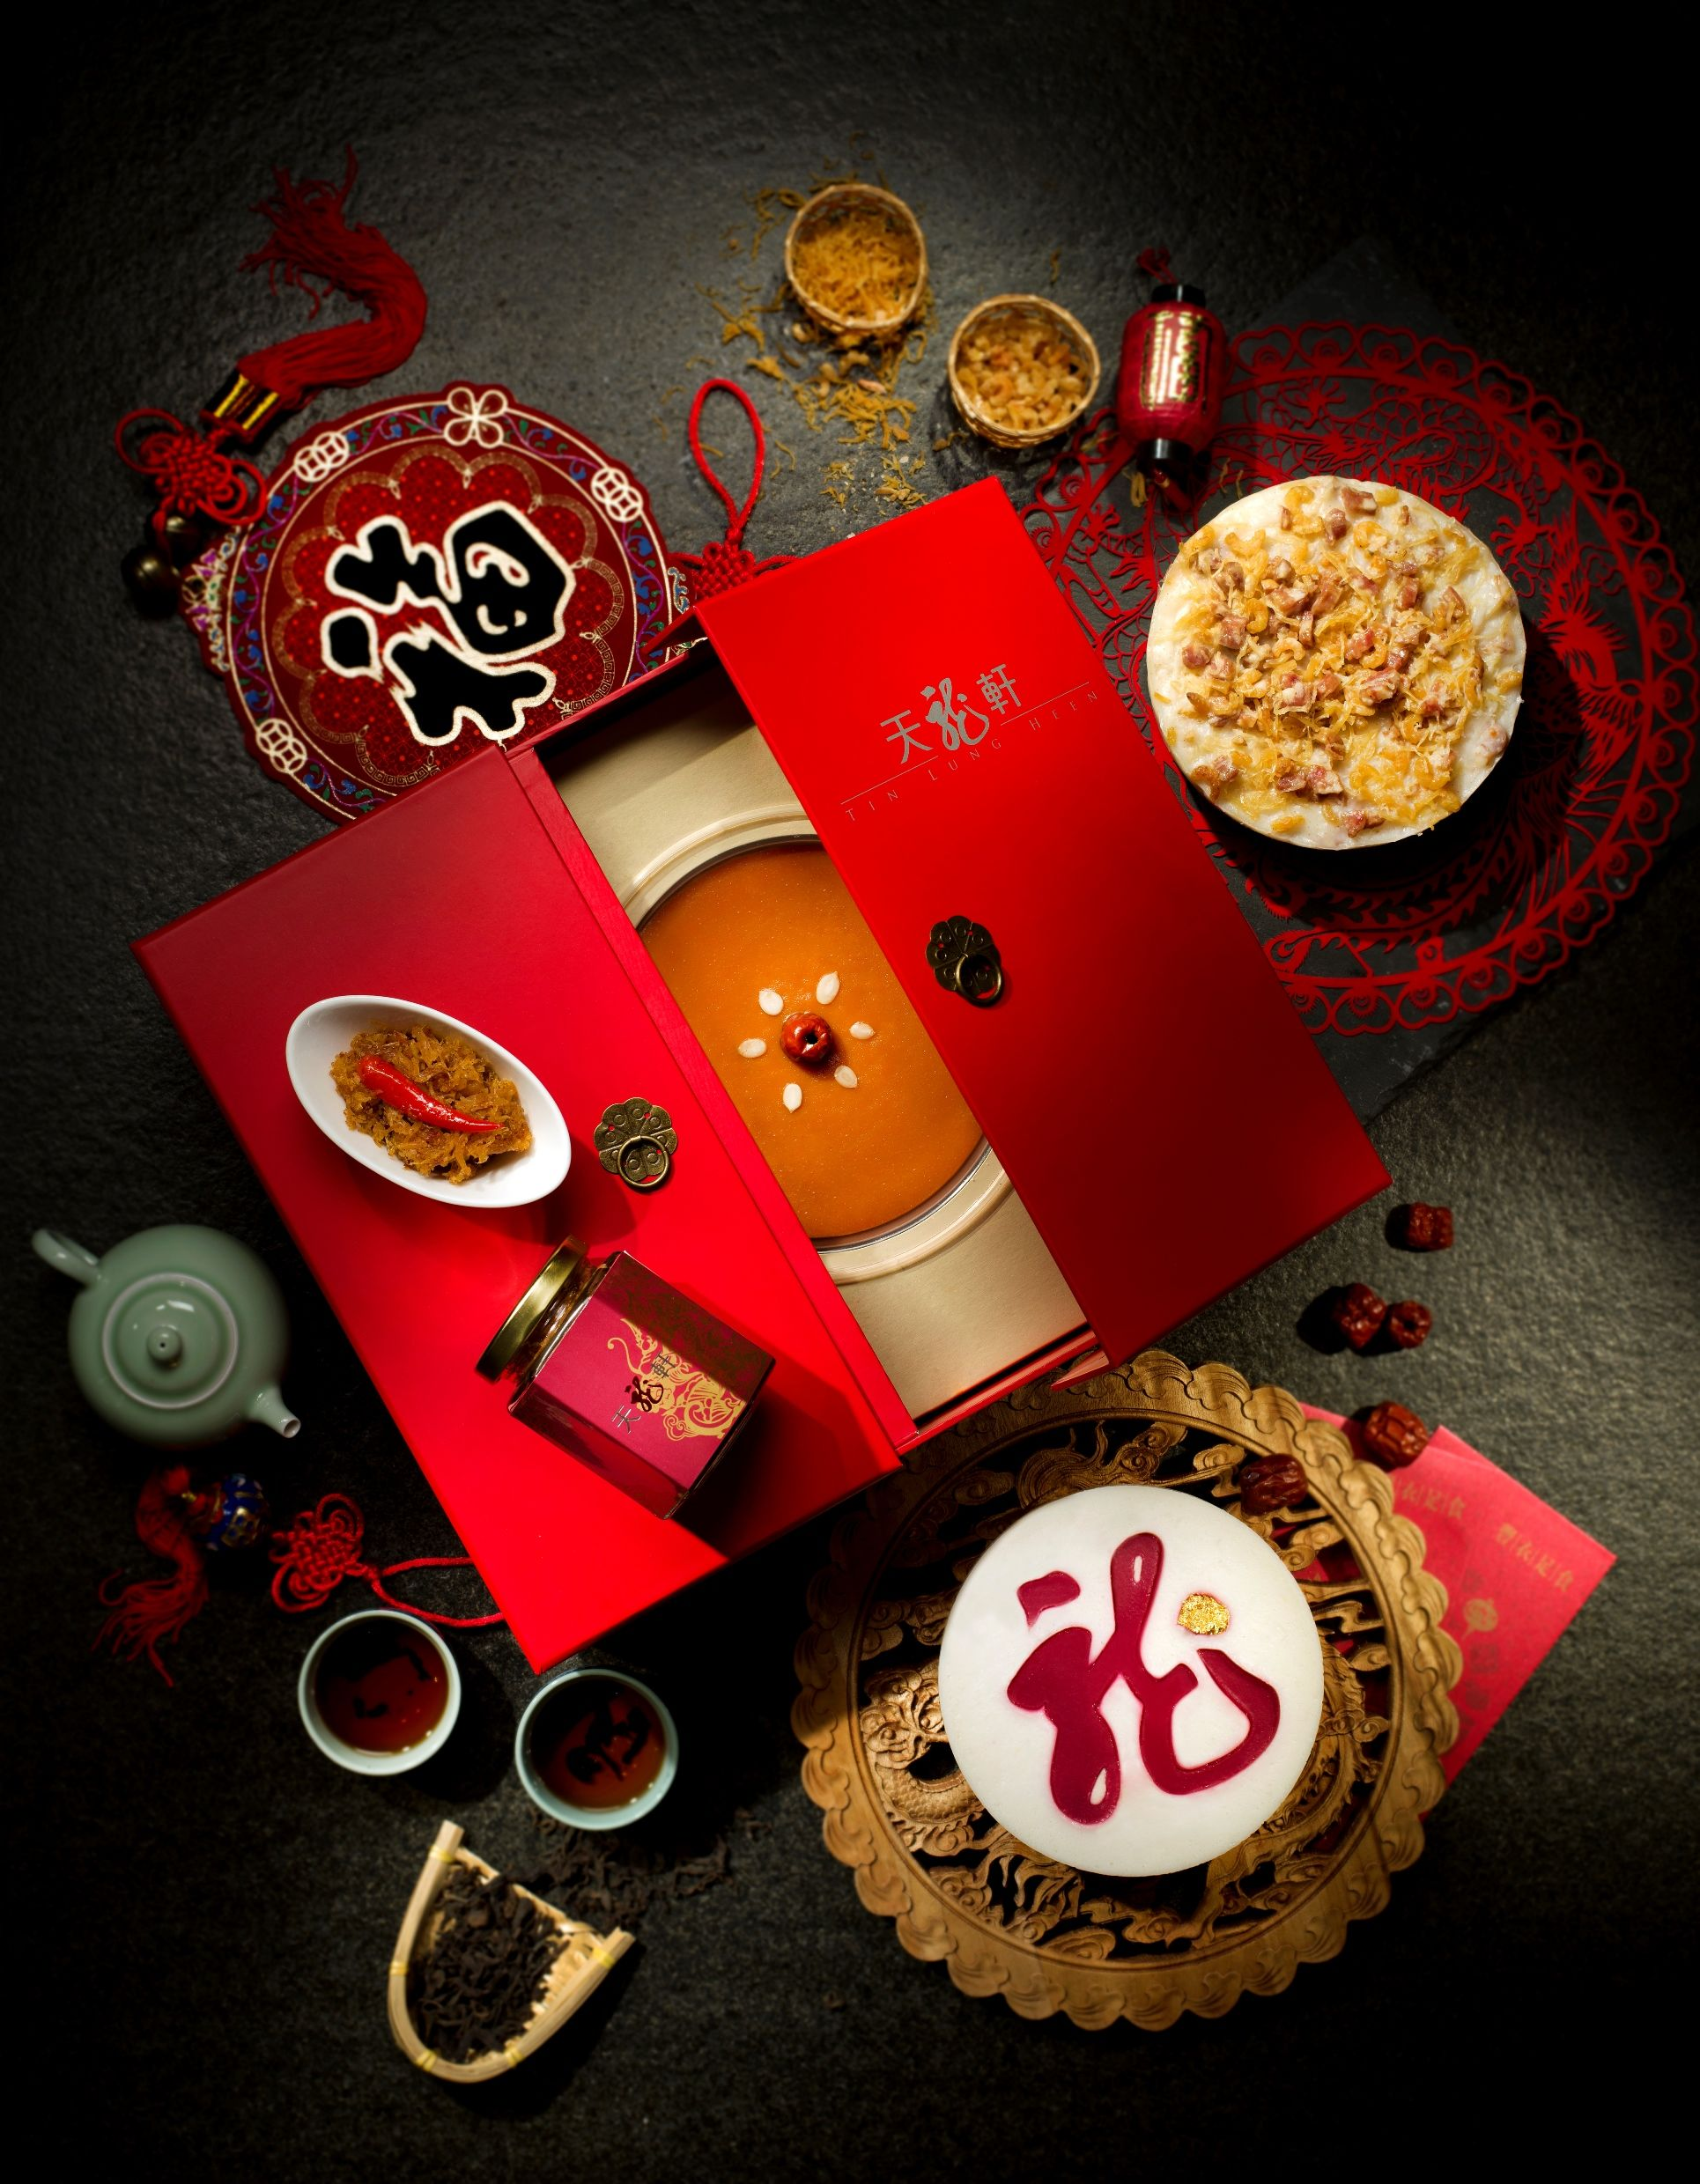 Tin Lung Heen sets the stage for auspicious Chinese New